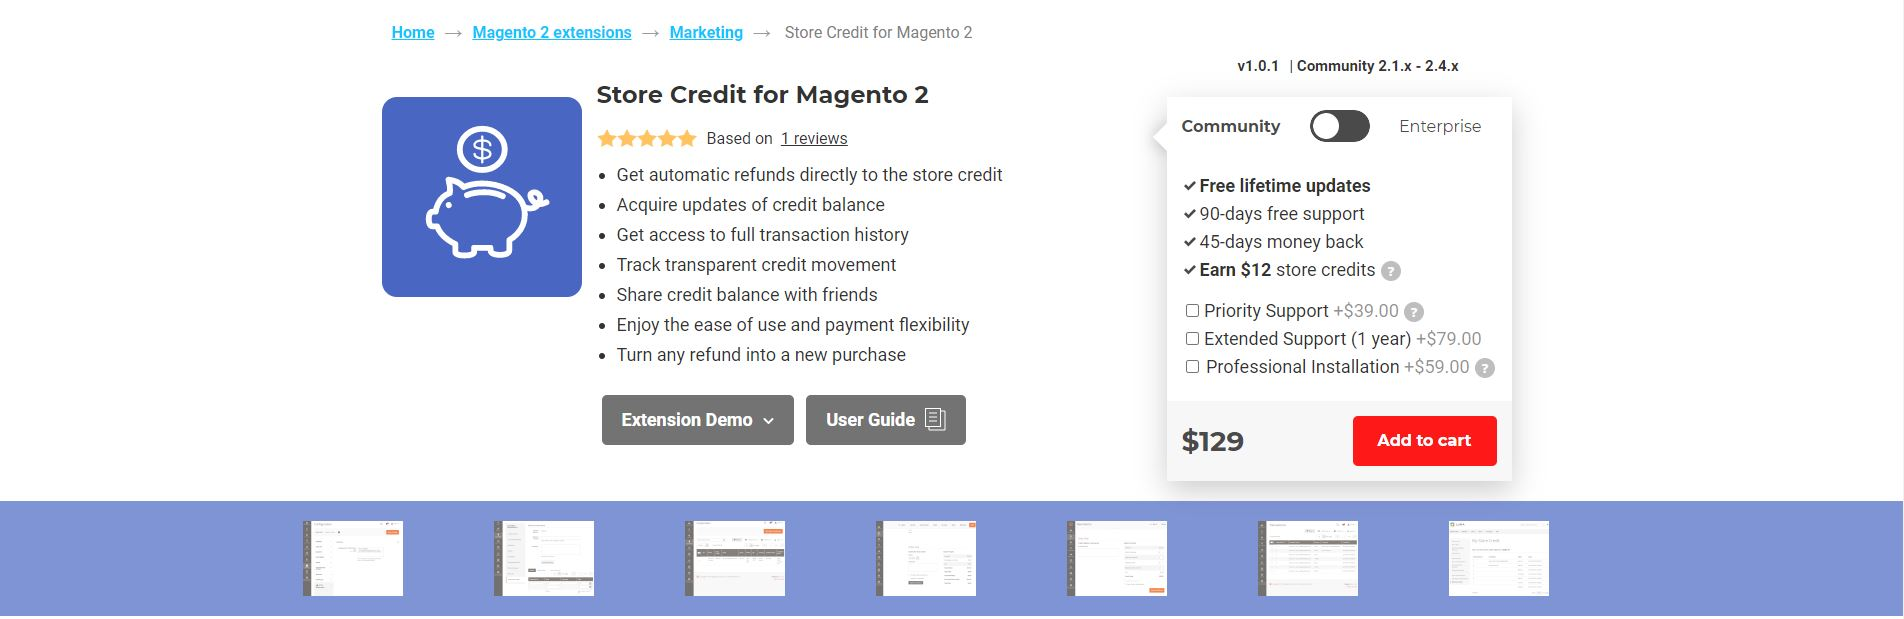 Magento store credit extension